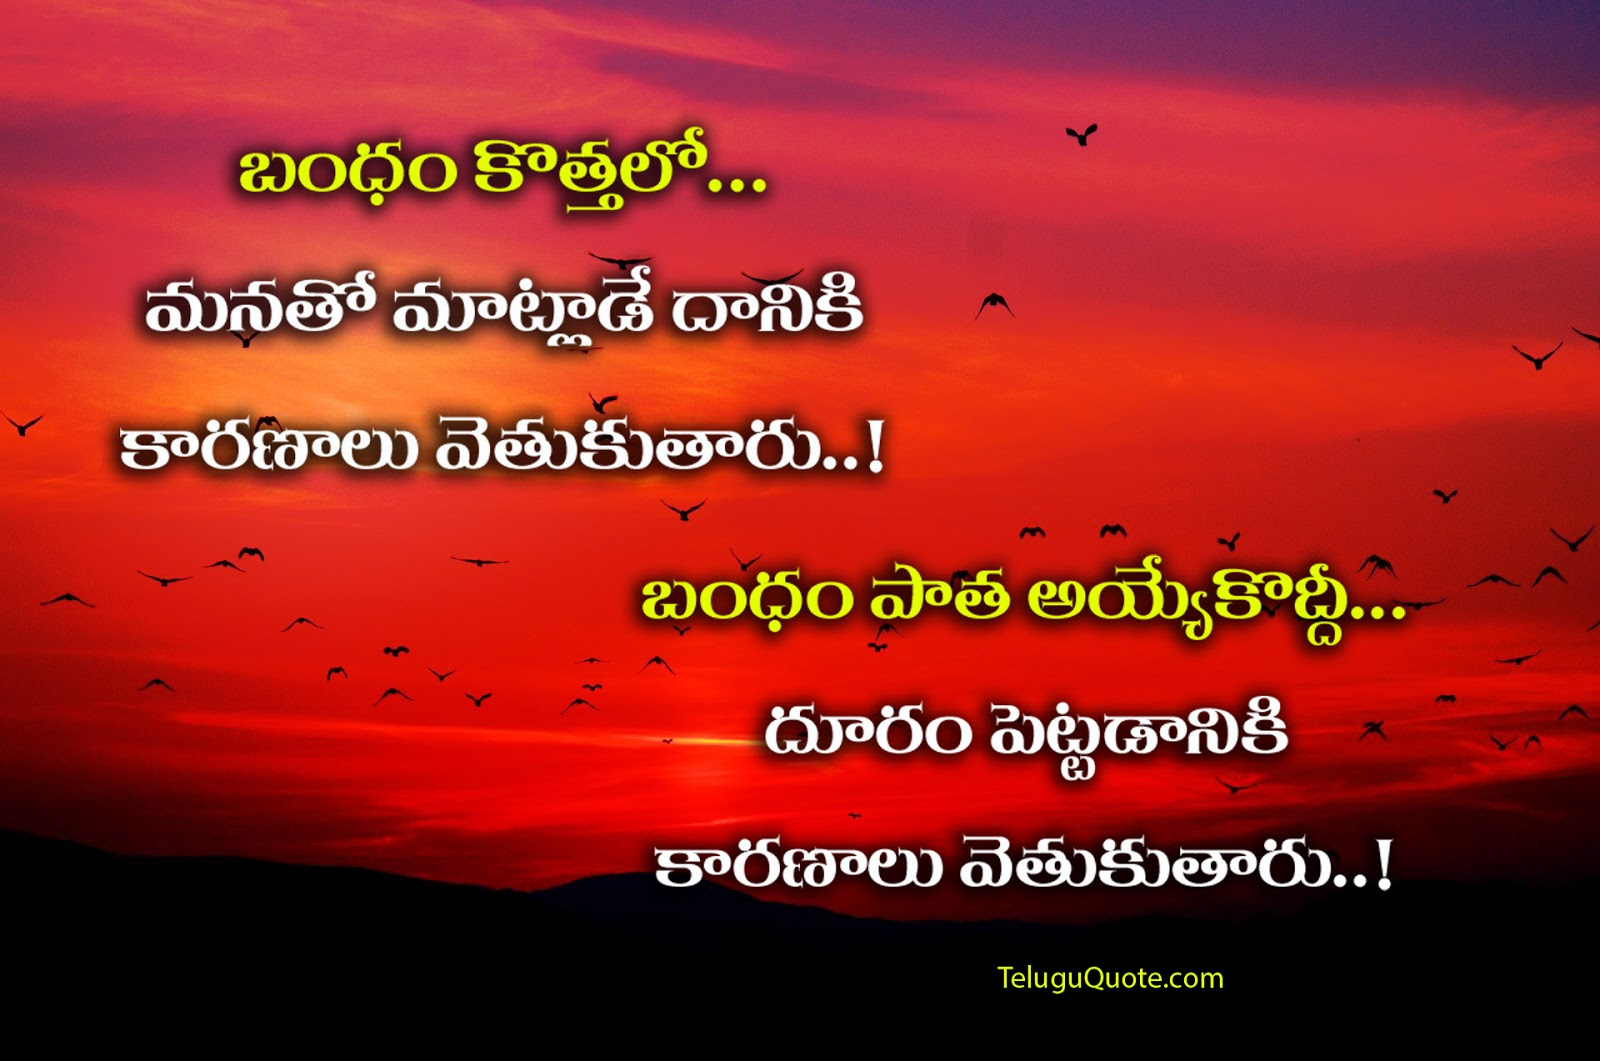 Relationship Quotes Telugu